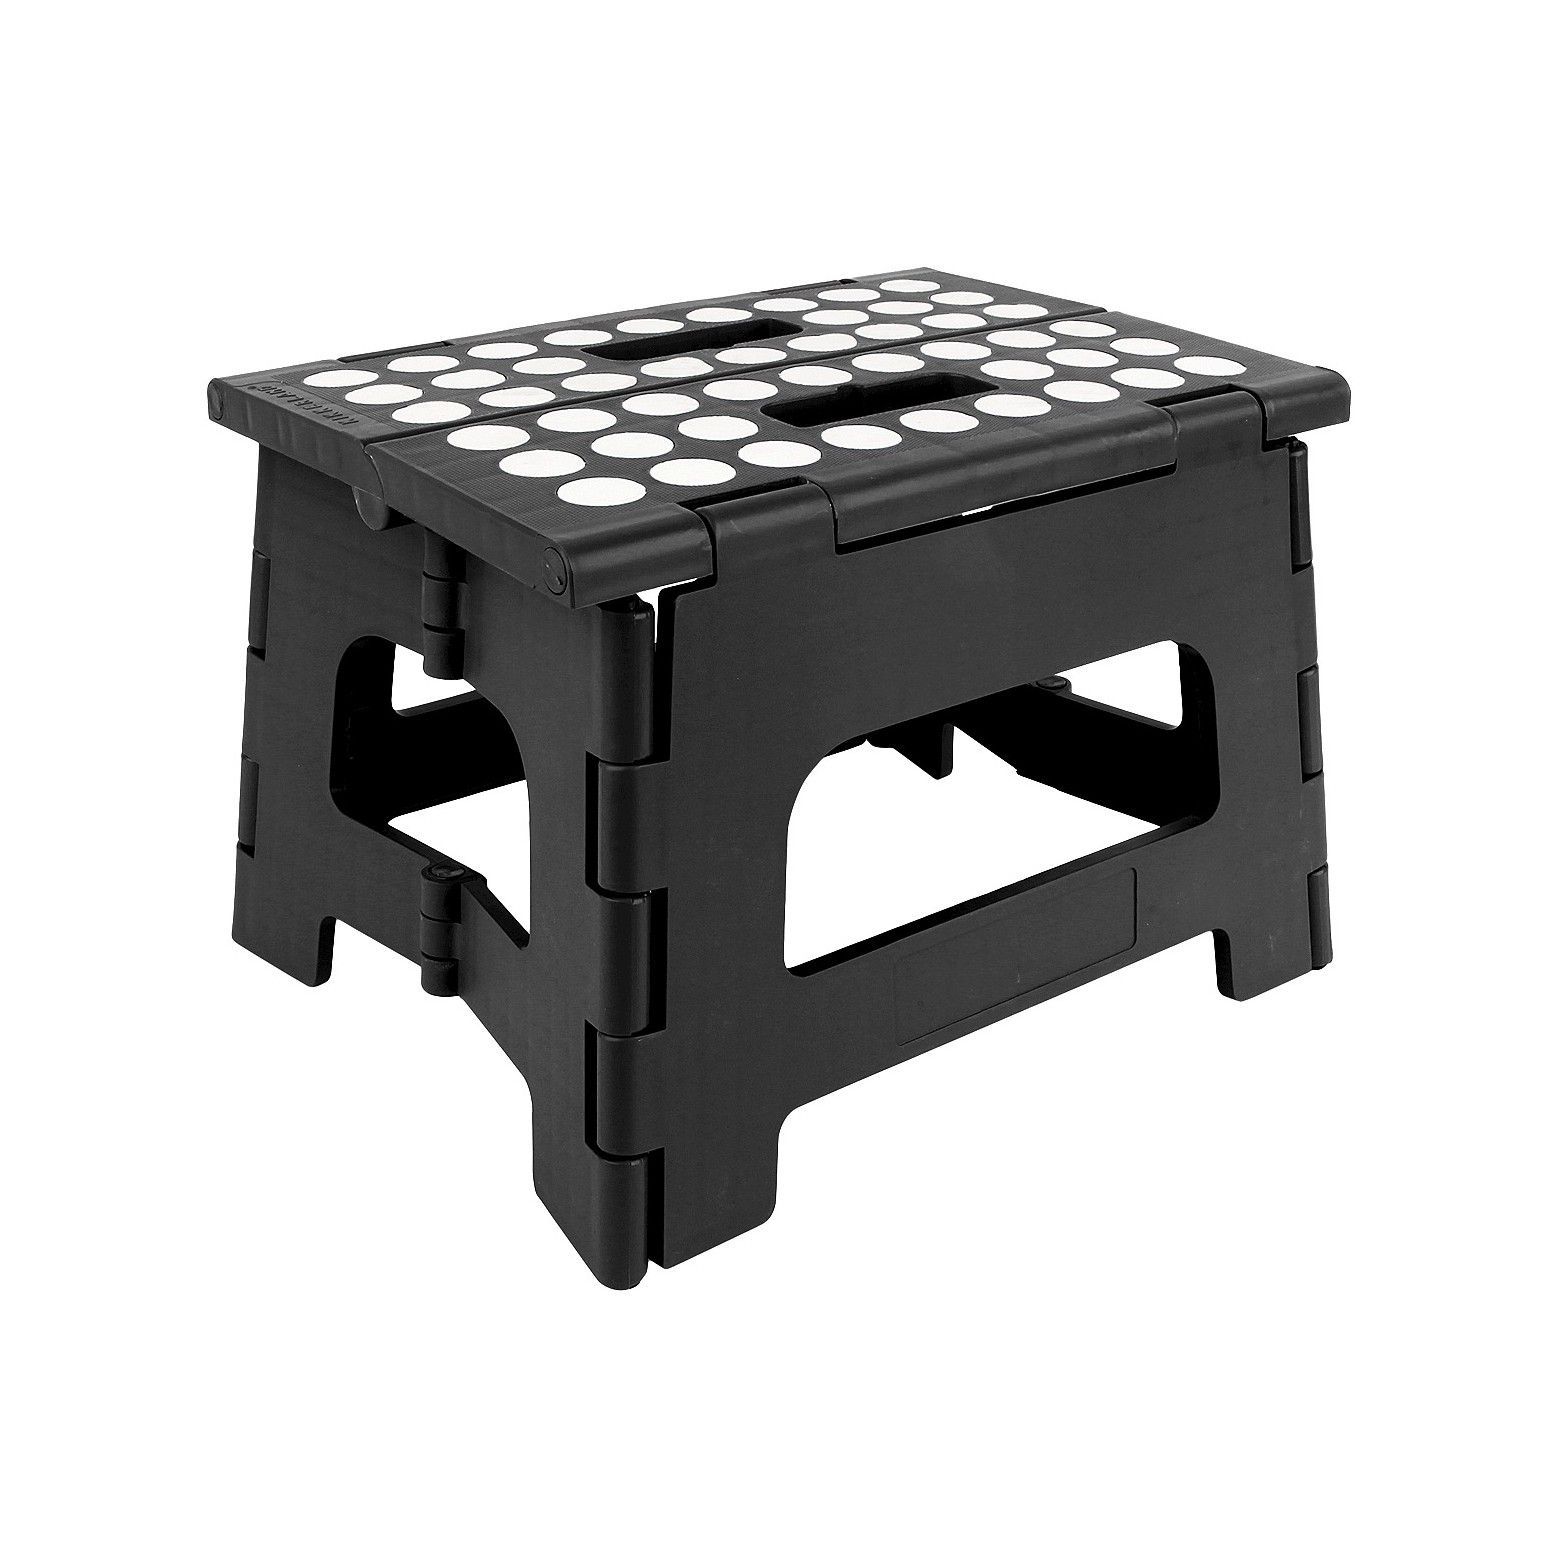 Terrific Kikkerland Assorted Step Stool Assort Home Stool Unemploymentrelief Wooden Chair Designs For Living Room Unemploymentrelieforg